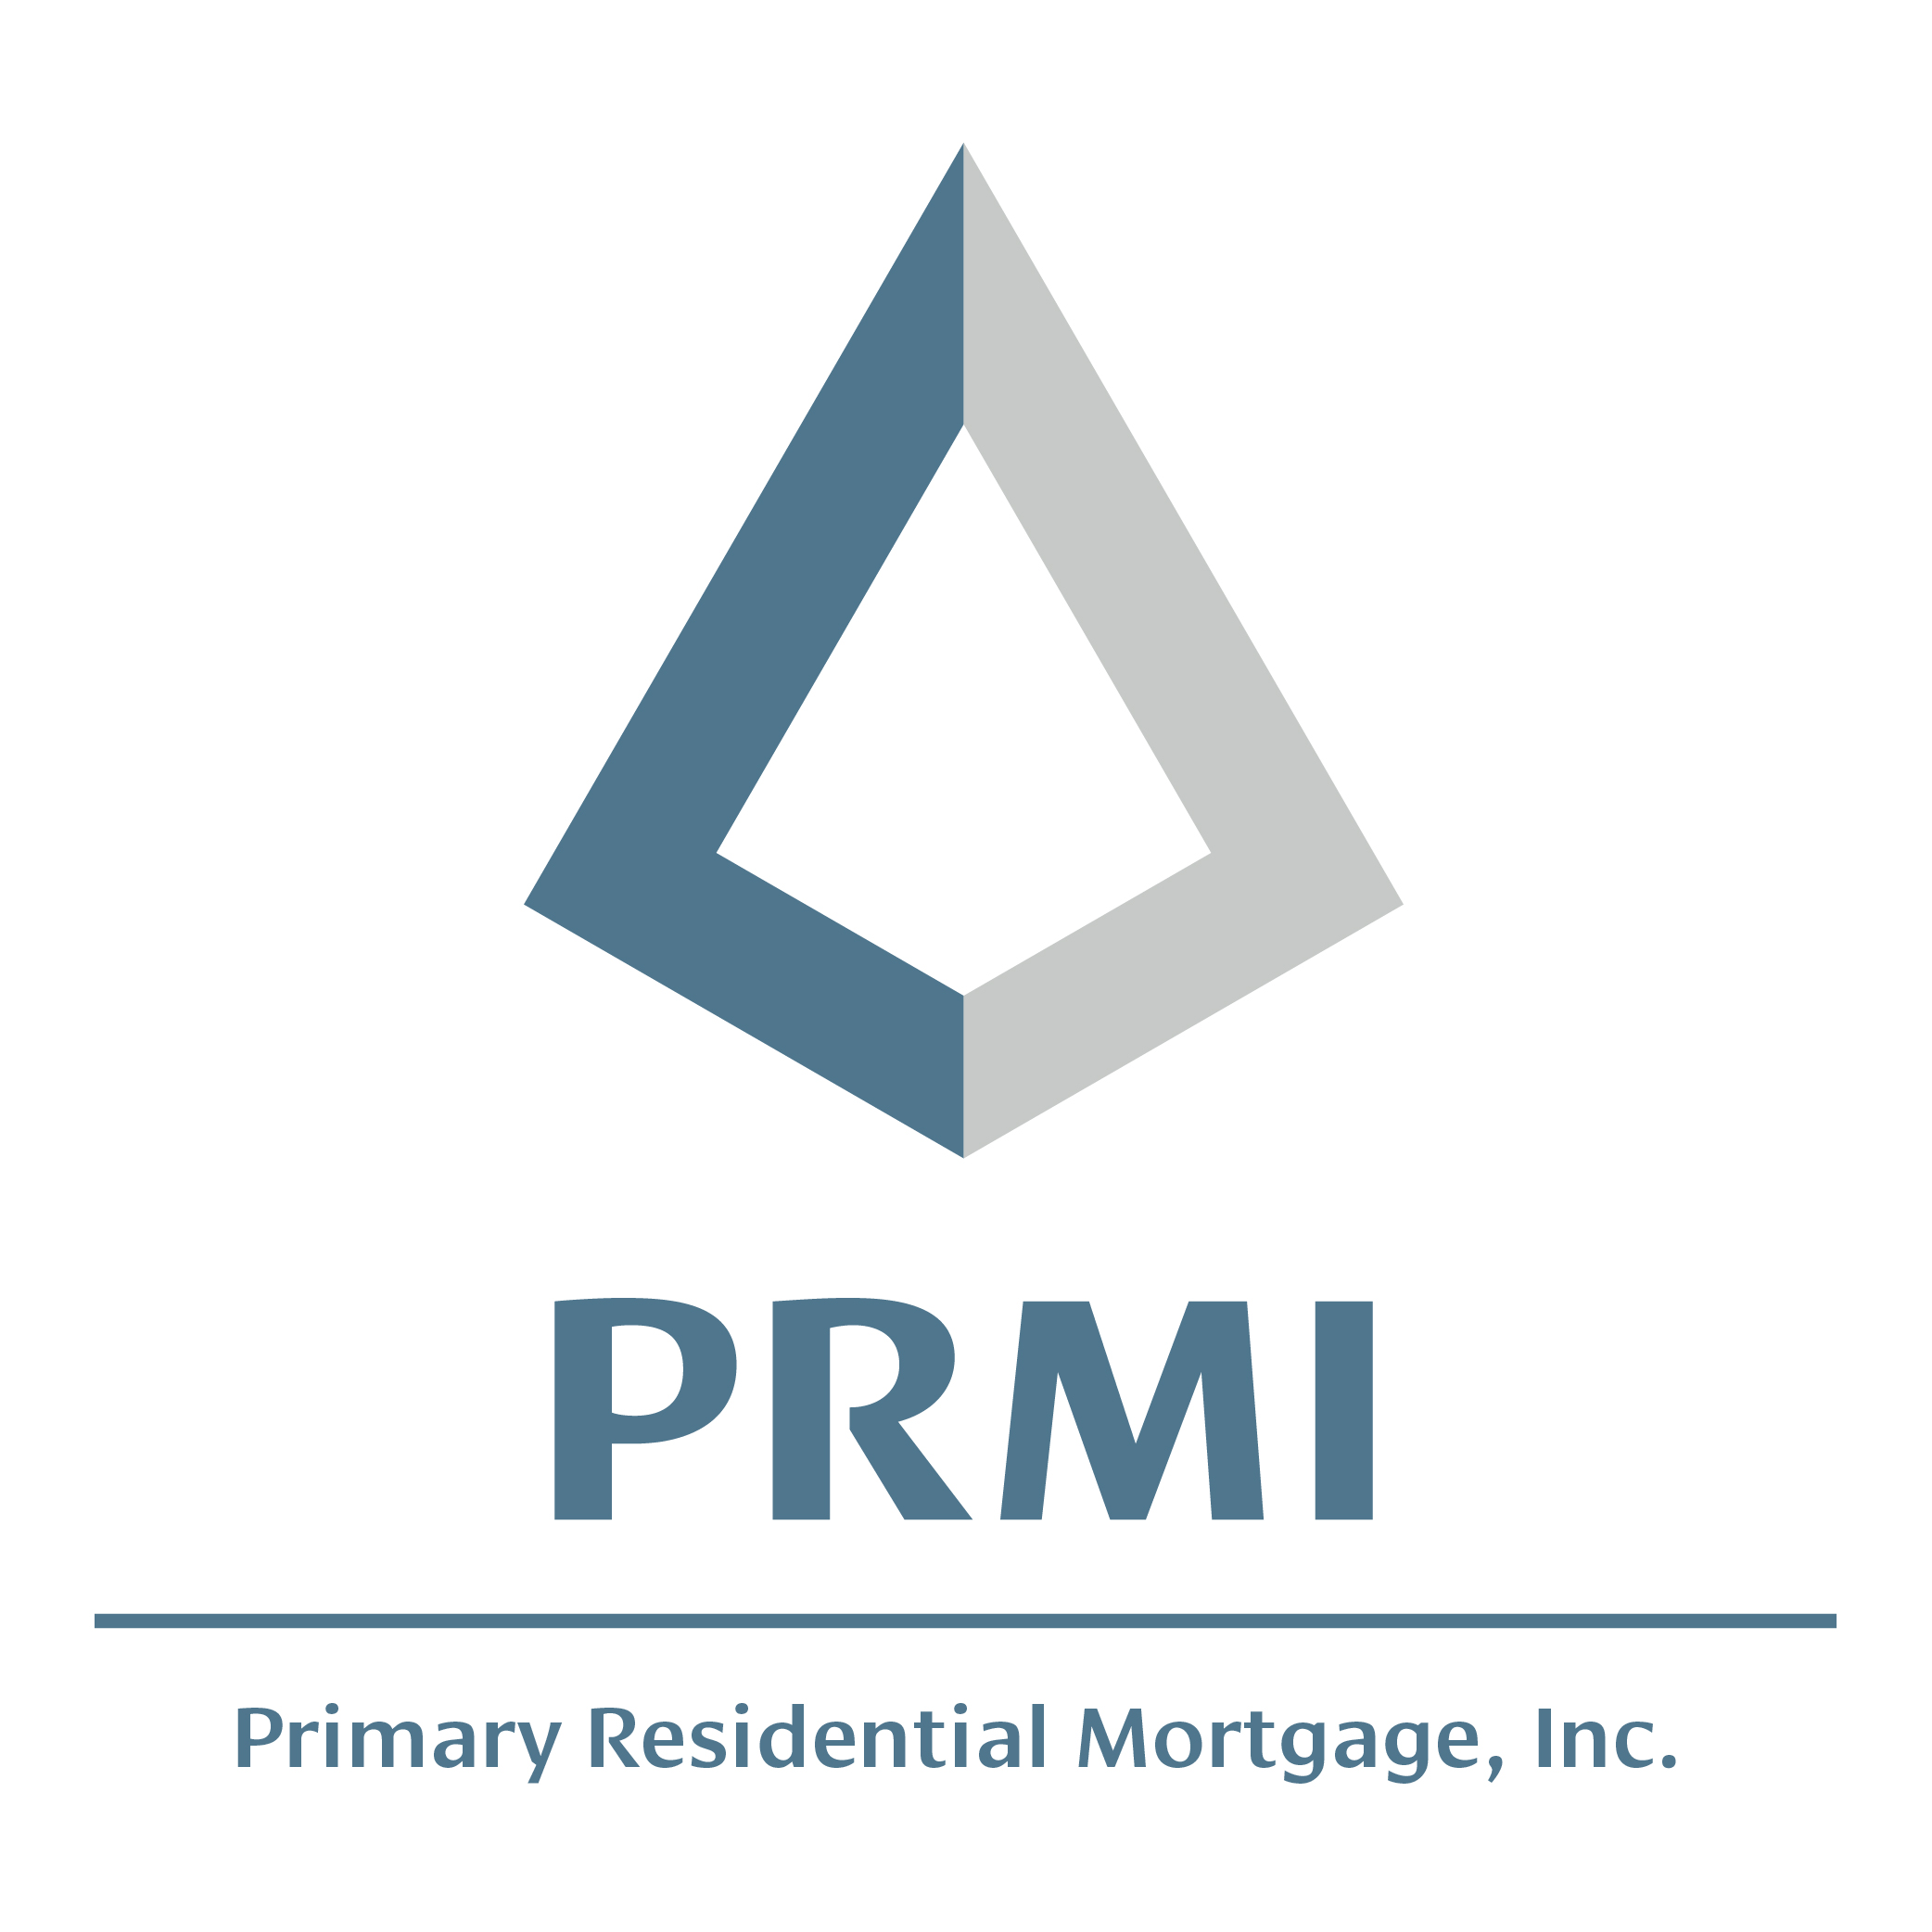 Primary Residential Mortgage, Inc. - Baltimore, MD 21224 - (443)384-3902 | ShowMeLocal.com